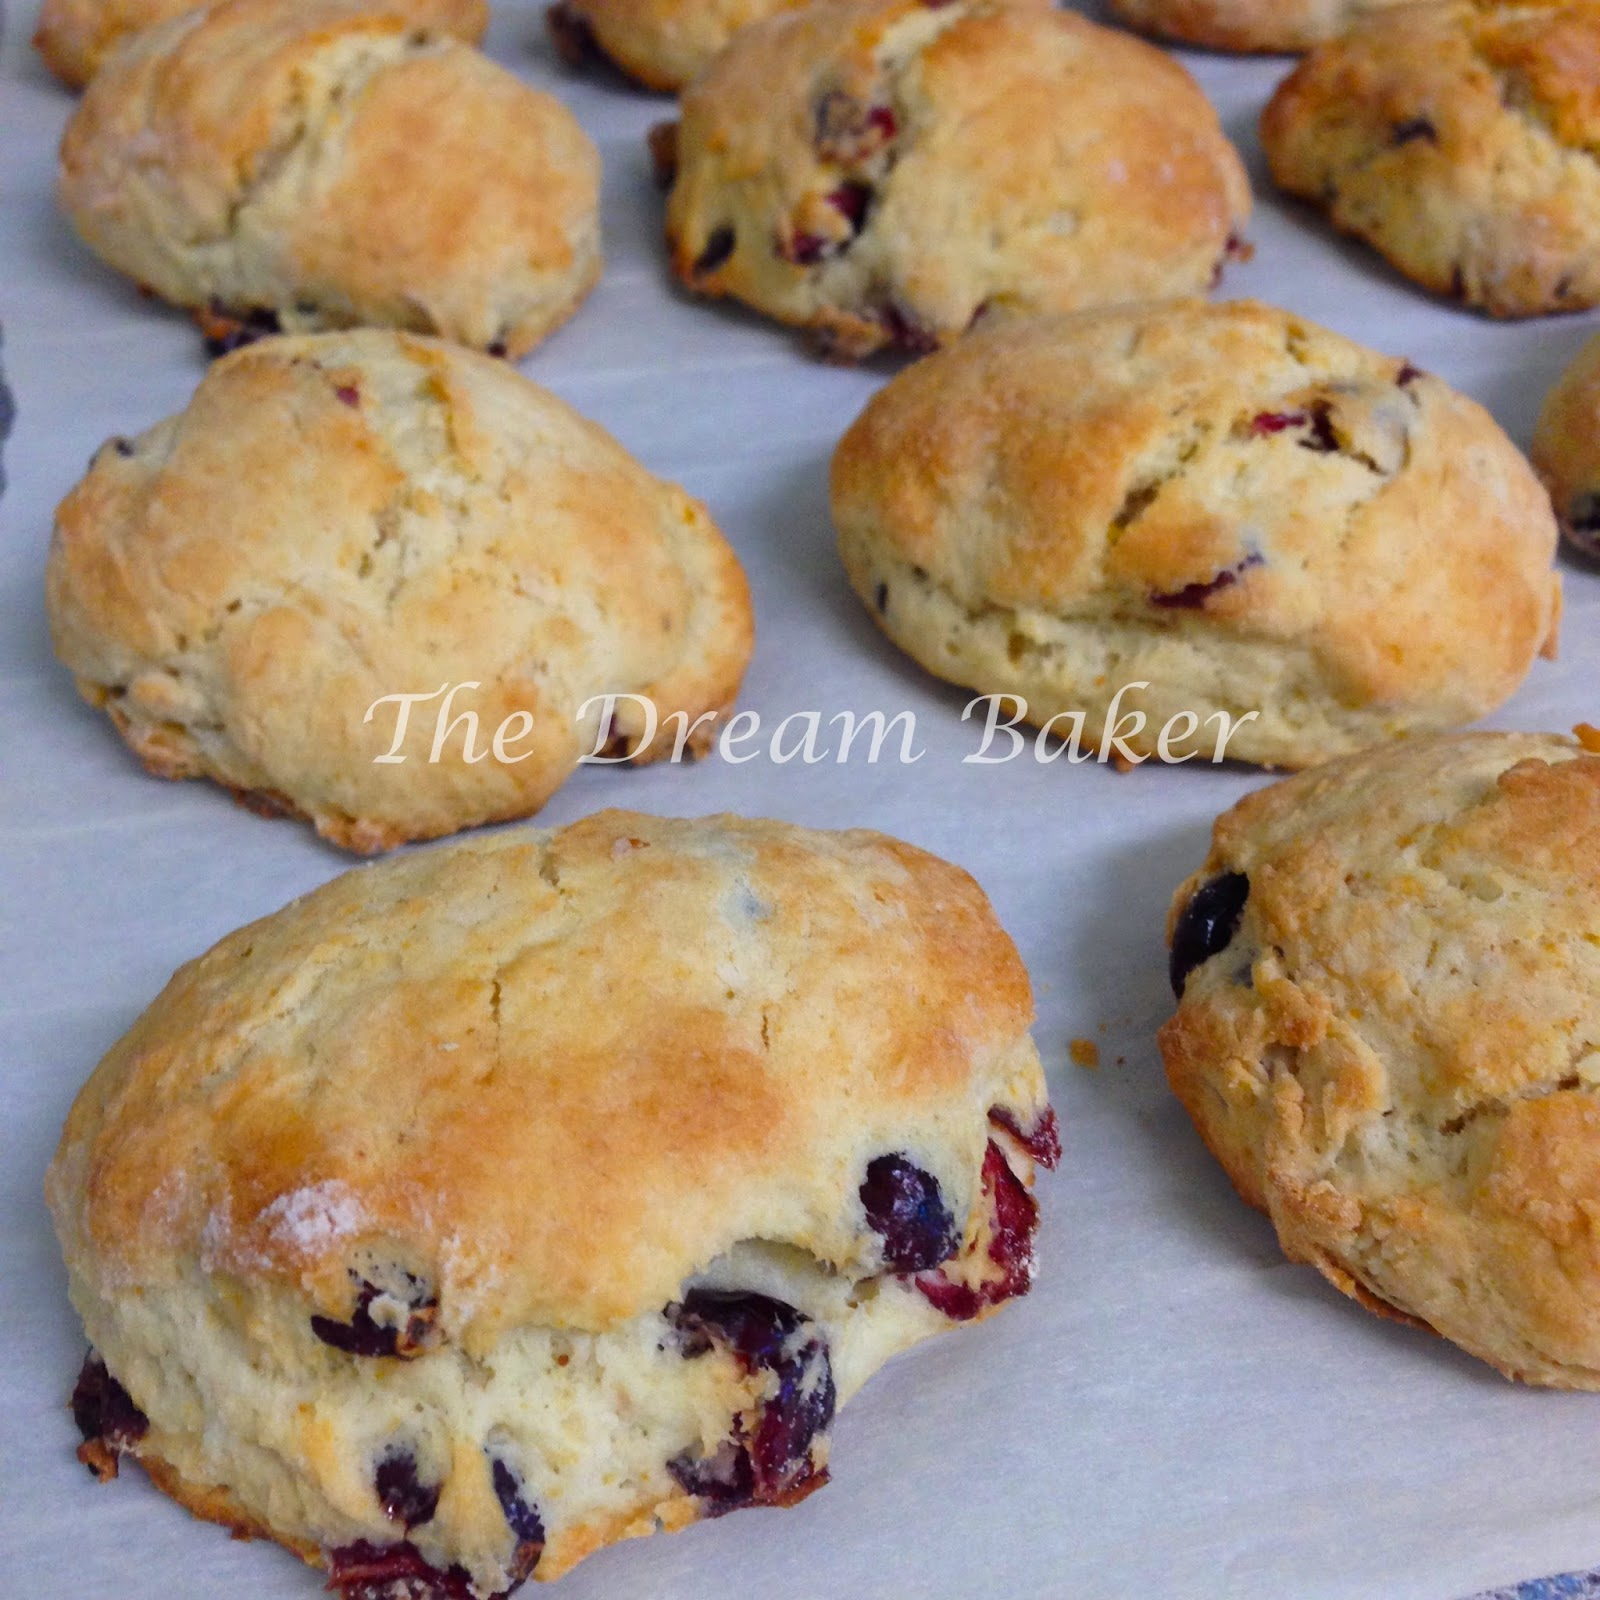 Eccles Cakes (Stuffed Pastry With Brandy-Soaked Raisins) Recipes ...